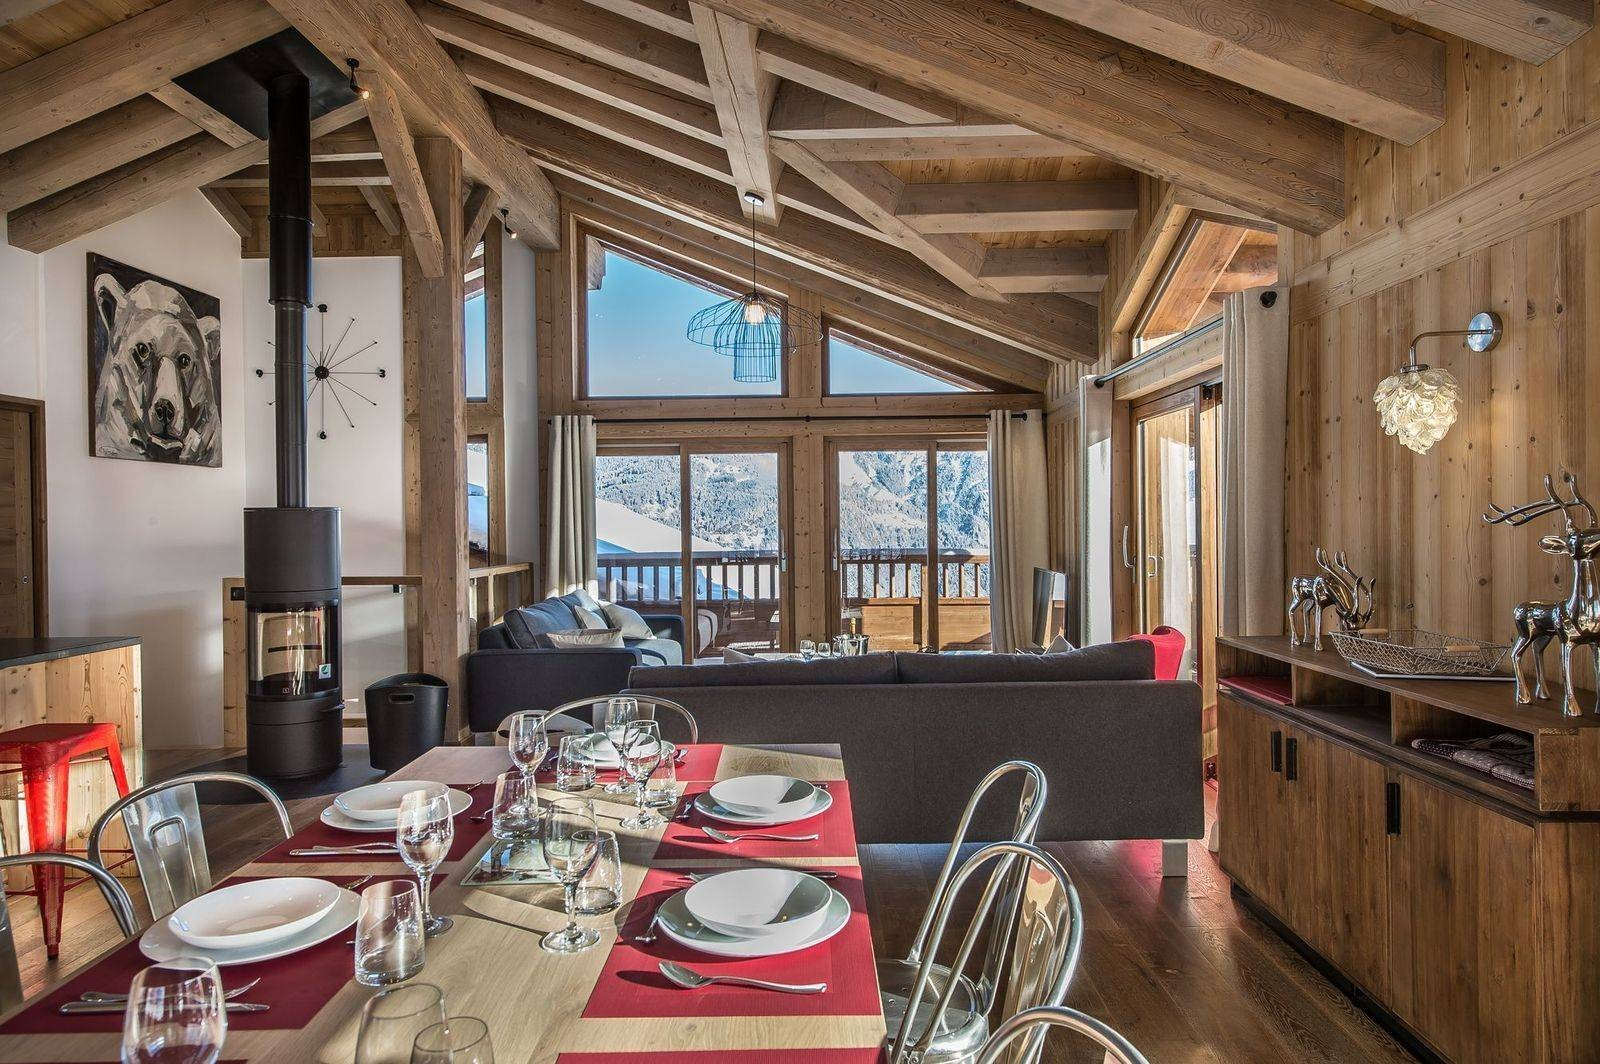 Courchevel 1550 Location Chalet Luxe Nibite Salle A Manger 3